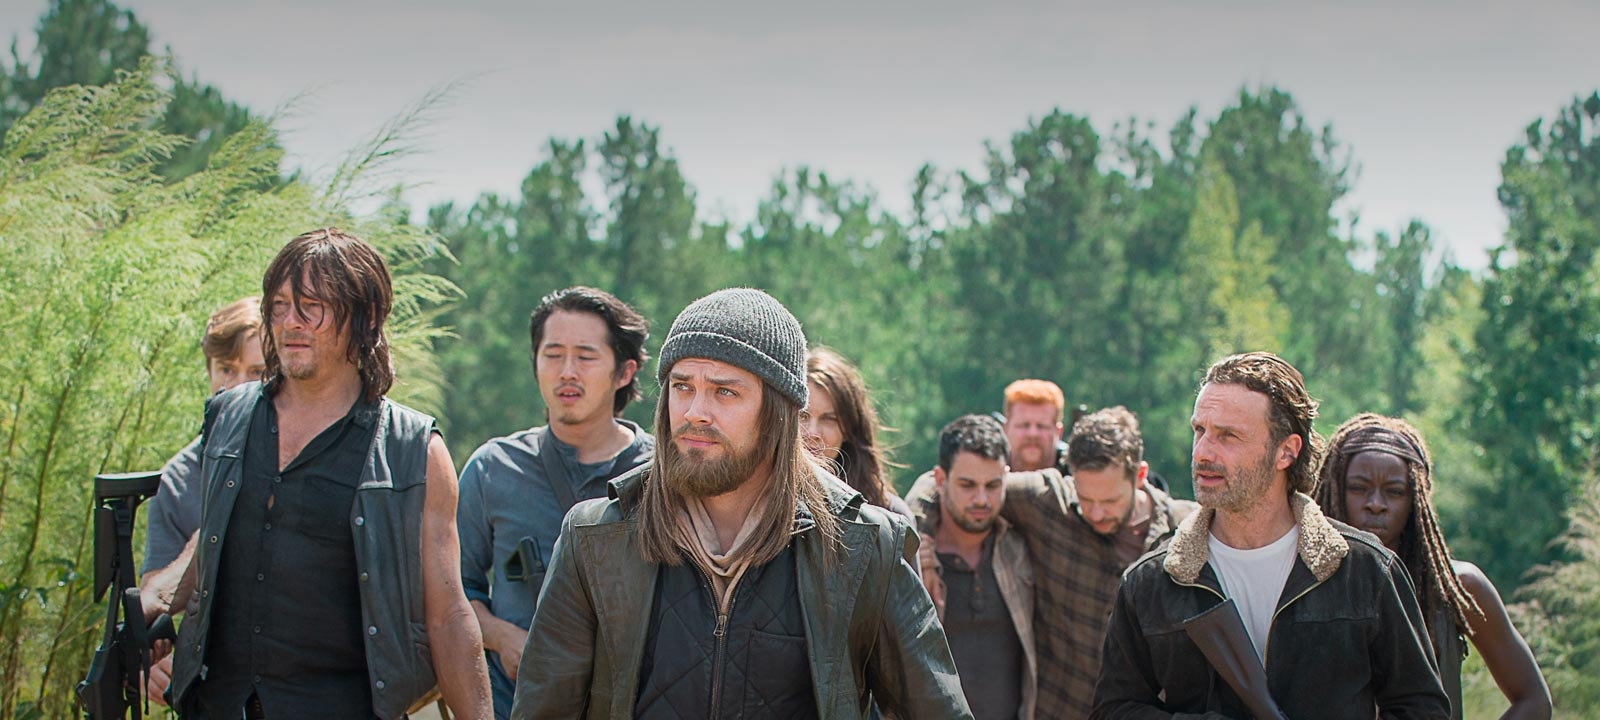 The Walking Dead Season 6 Episode 11 Review: There Goes The